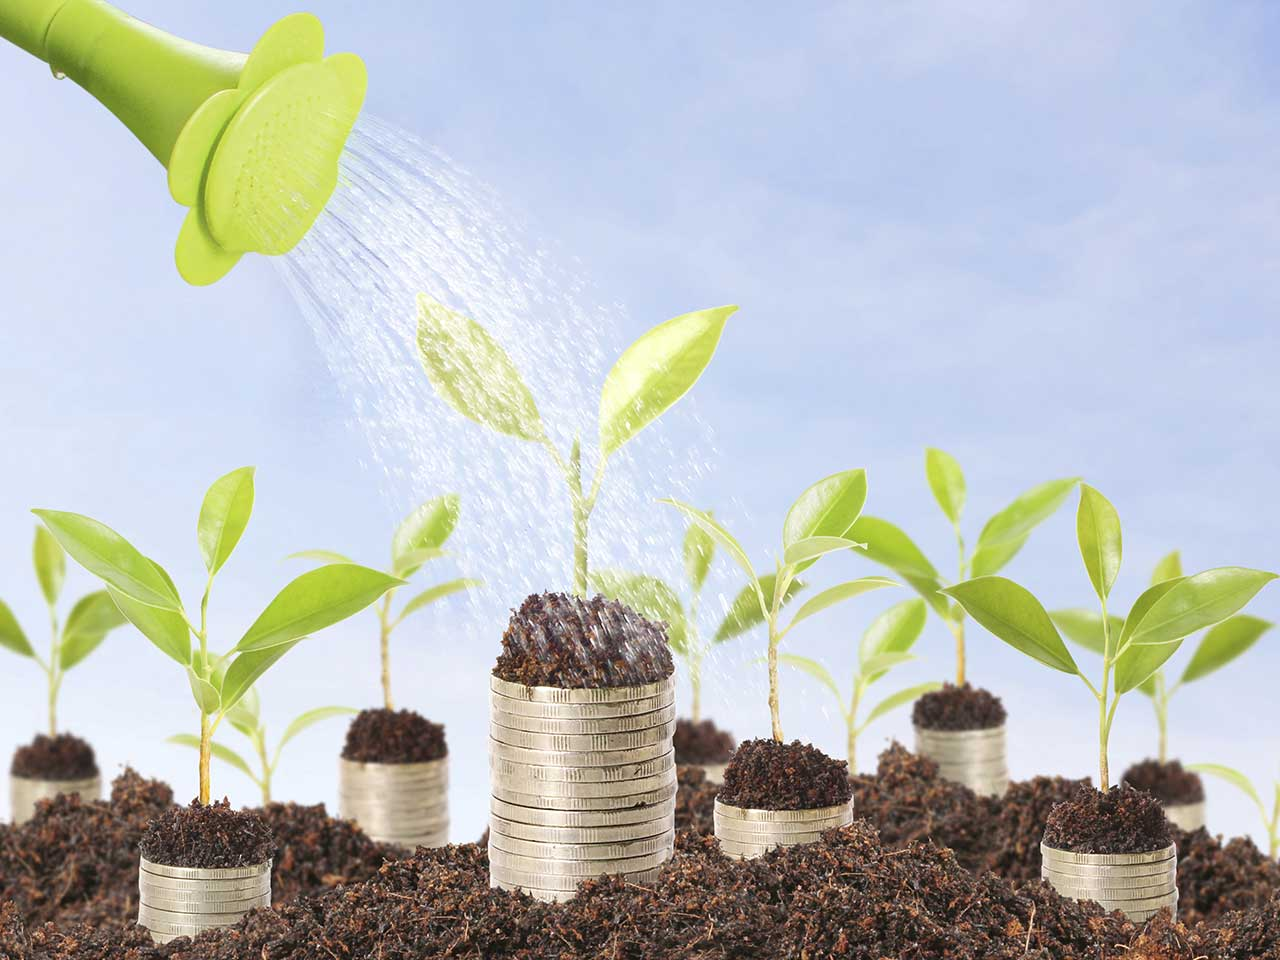 Watering can pouring water onto shoots springing from piles of coins to represent growing investments